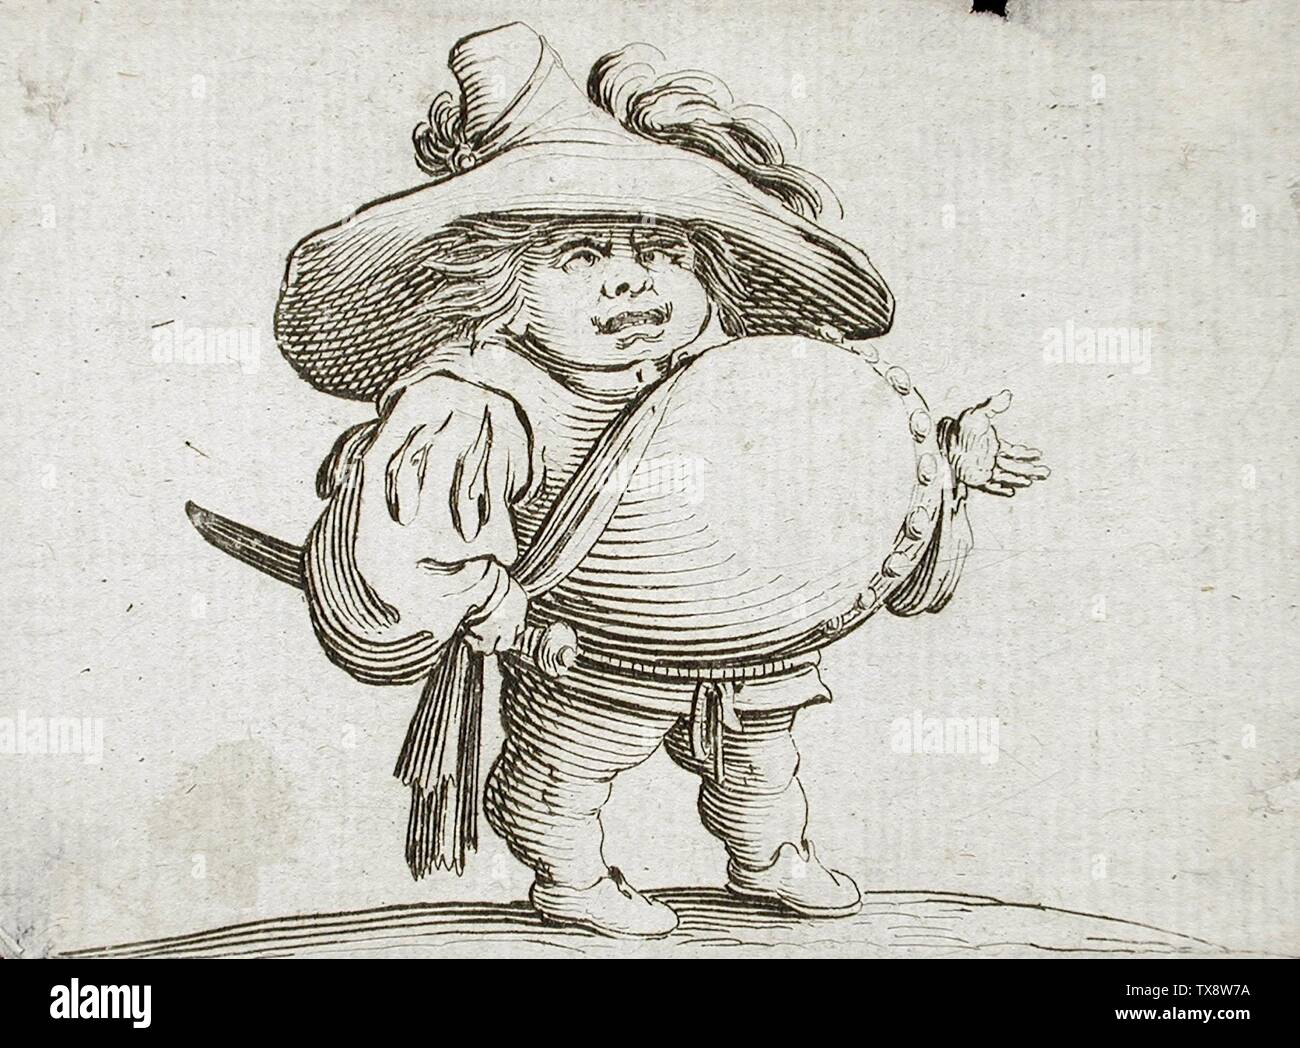 'Man with Large Belly Adorned with a Row of Buttons; English:  France, circa 1616 Alternate Title: L'homme au gros ventre orné d'une rangeé de boutons Series: Les Gobbi Prints; etchings Etching Gift of Alfred and Esther Norris (M.83.318.15) Prints and Drawings; circa 1616 date QS:P571,+1616-00-00T00:00:00Z/9,P1480,Q5727902; ' - Stock Image